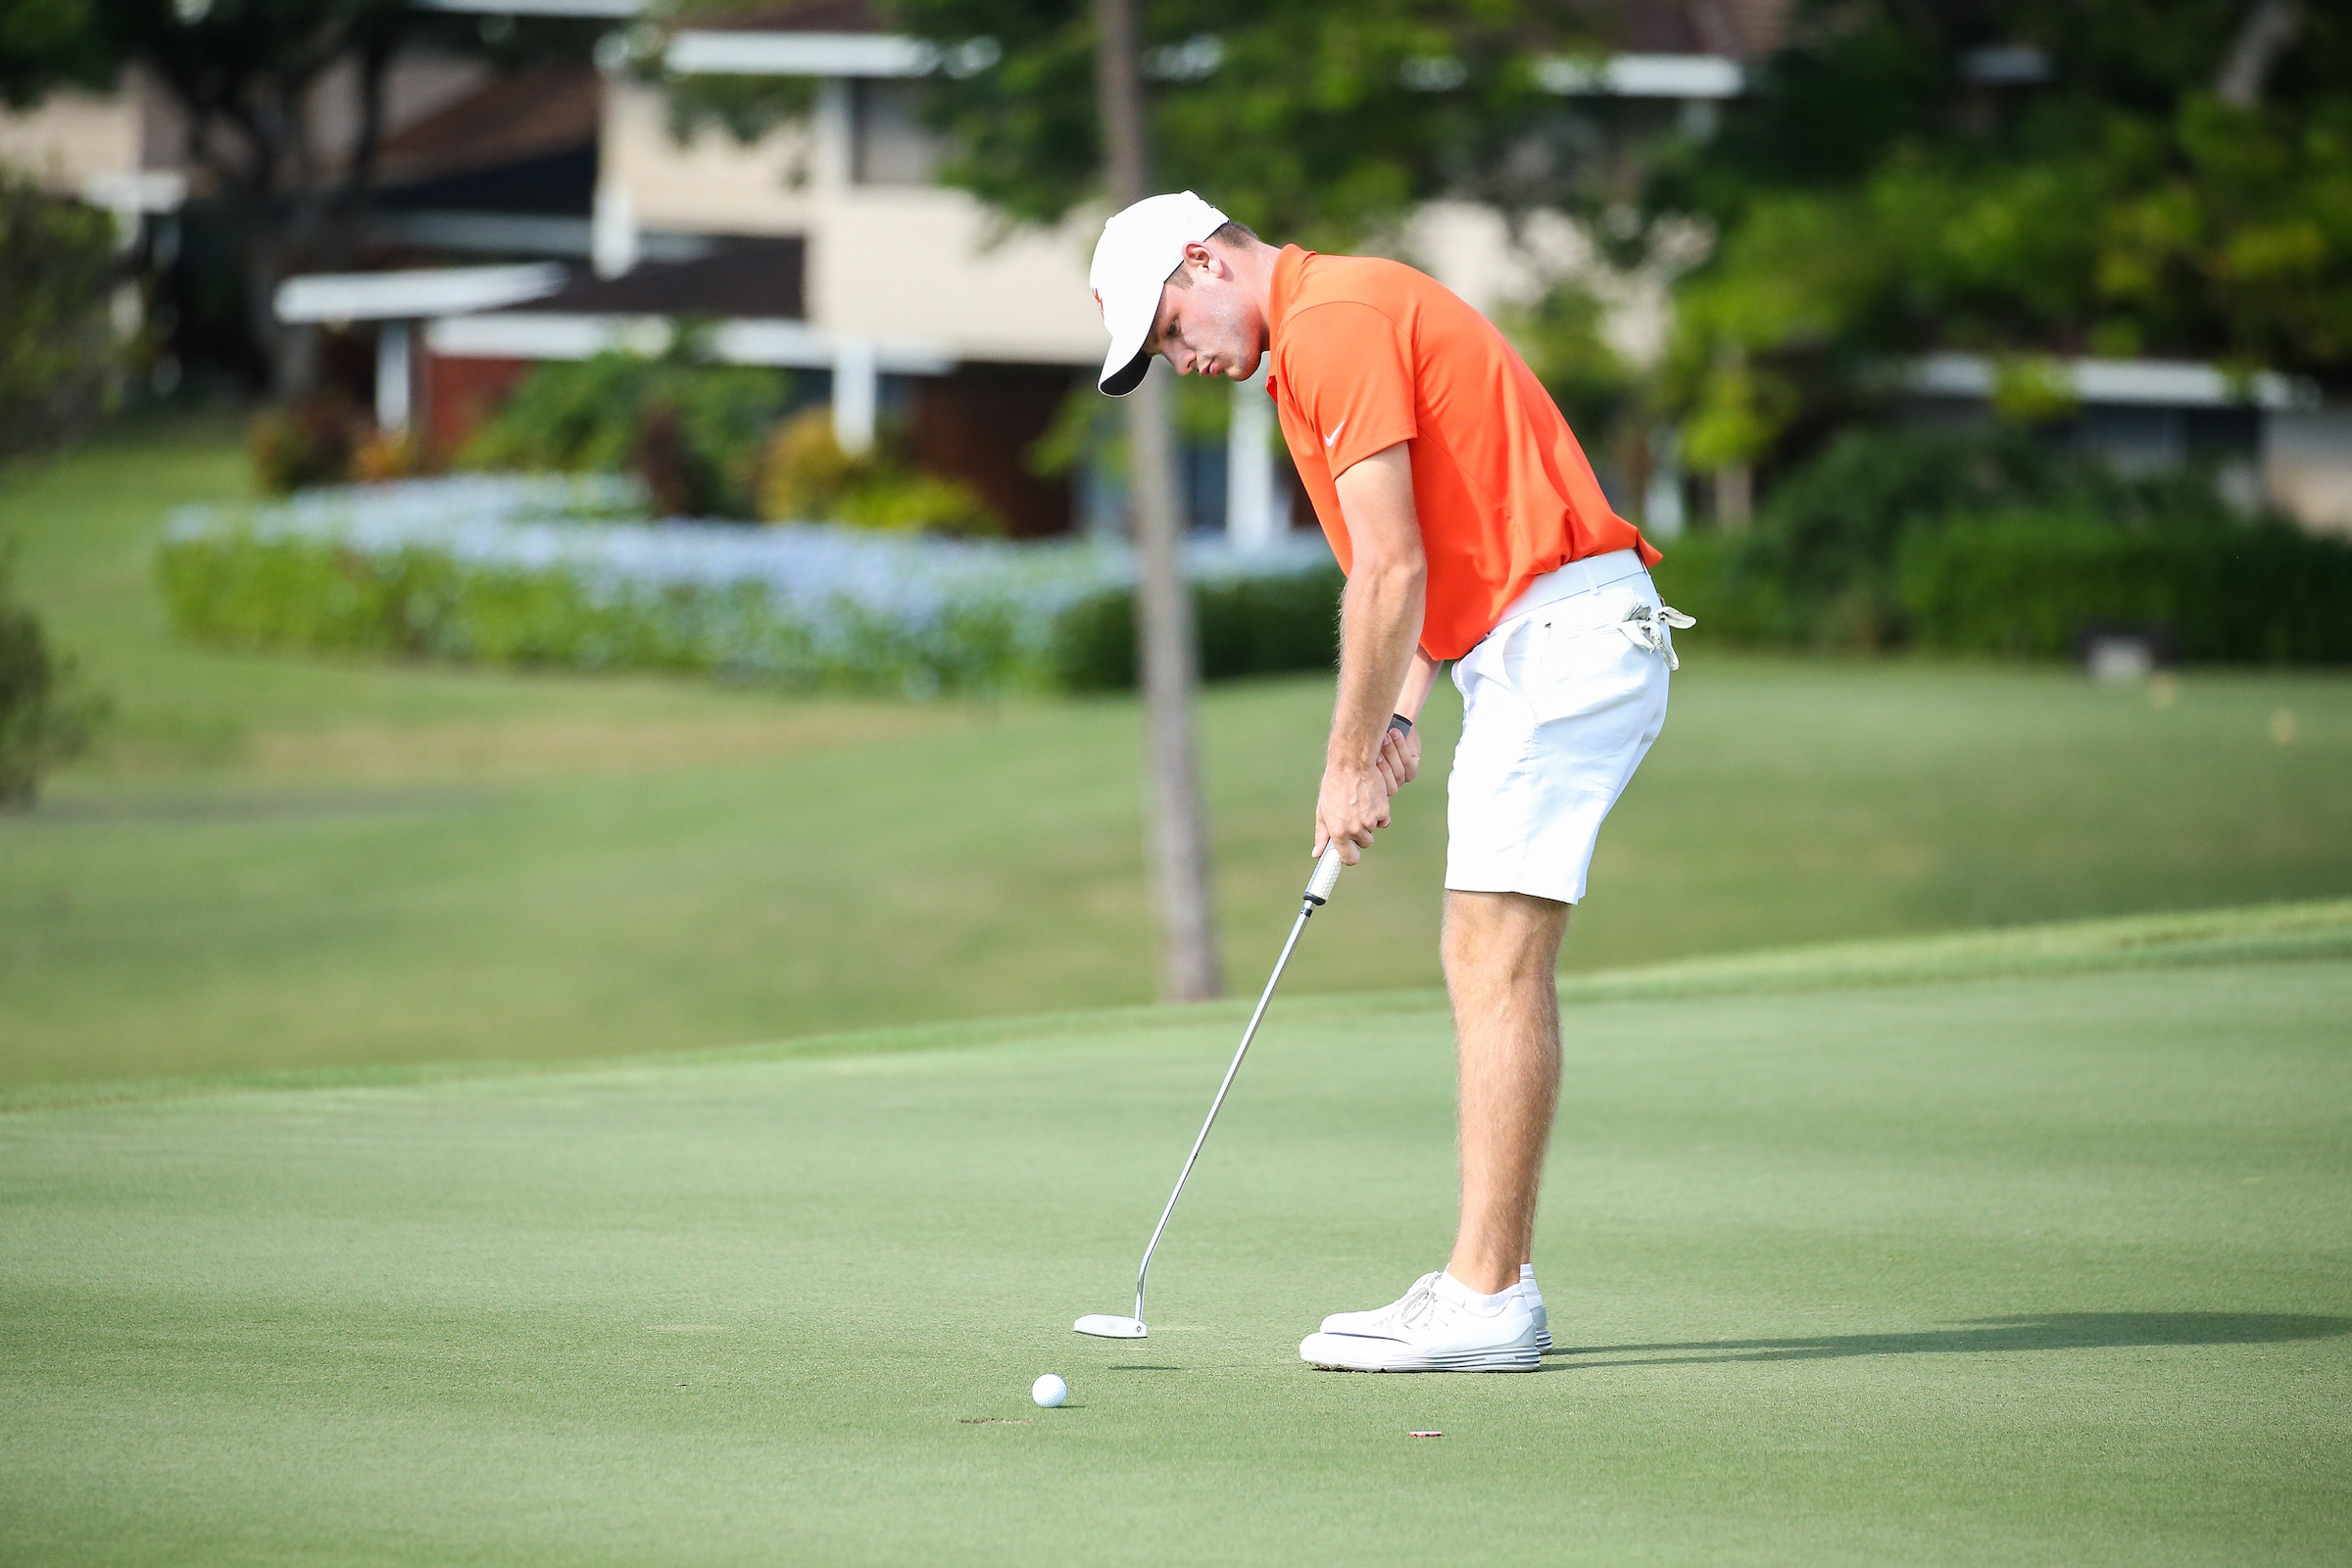 Redman Moves on to Elite Eight of US Amateur